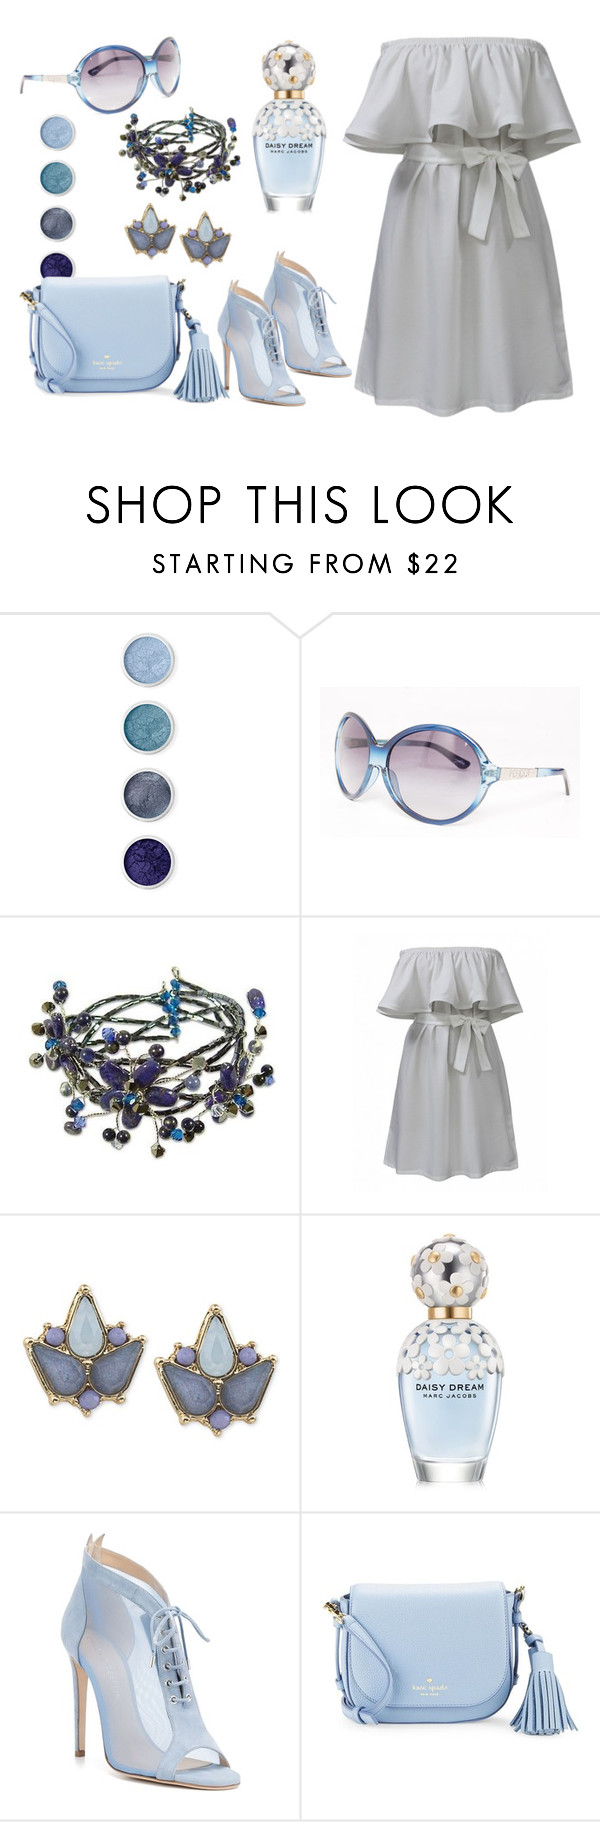 """Без названия #177"" by mahafromkailash ❤ liked on Polyvore featuring Terre Mère, Peridot London, NOVICA, Carolee, Marc Jacobs, Chloe Gosselin and Kate Spade"